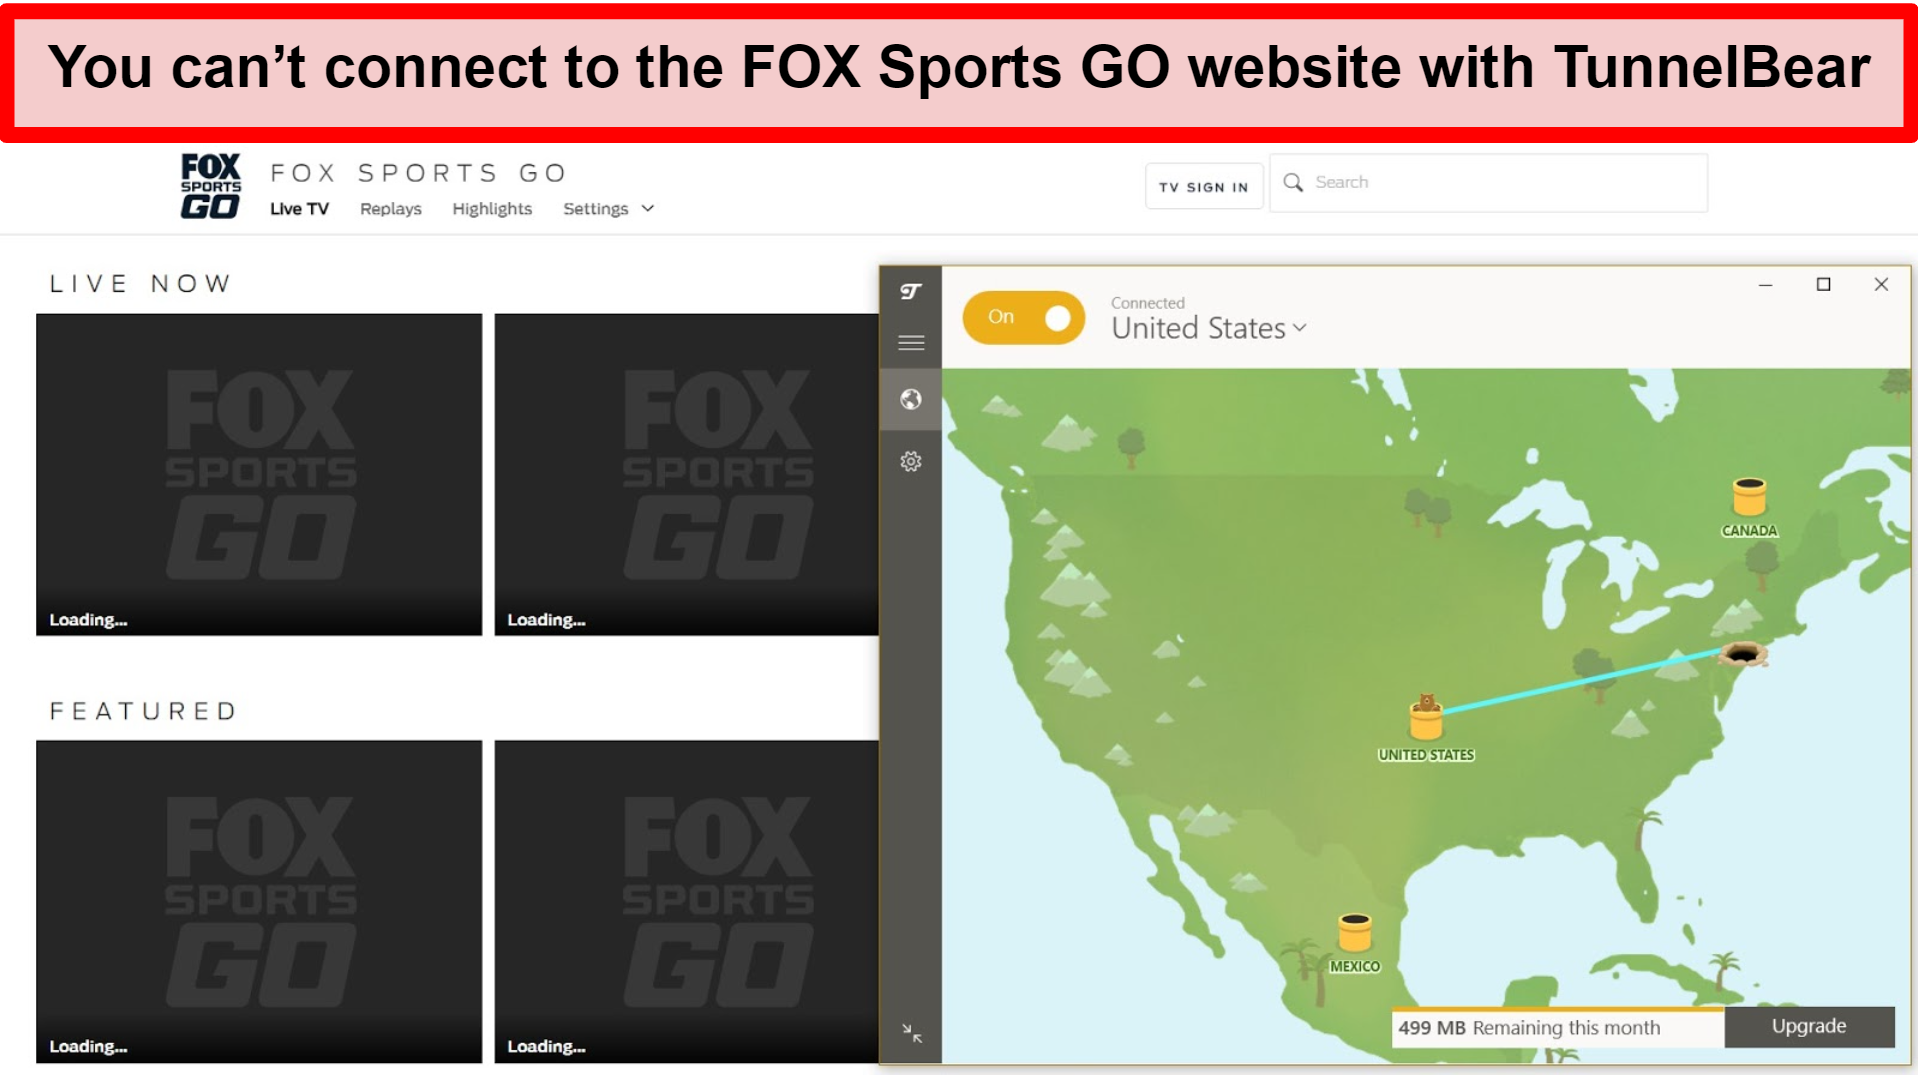 Screenshot of TunnelBear connected to a US server and FOX Sports GO with its content blocked